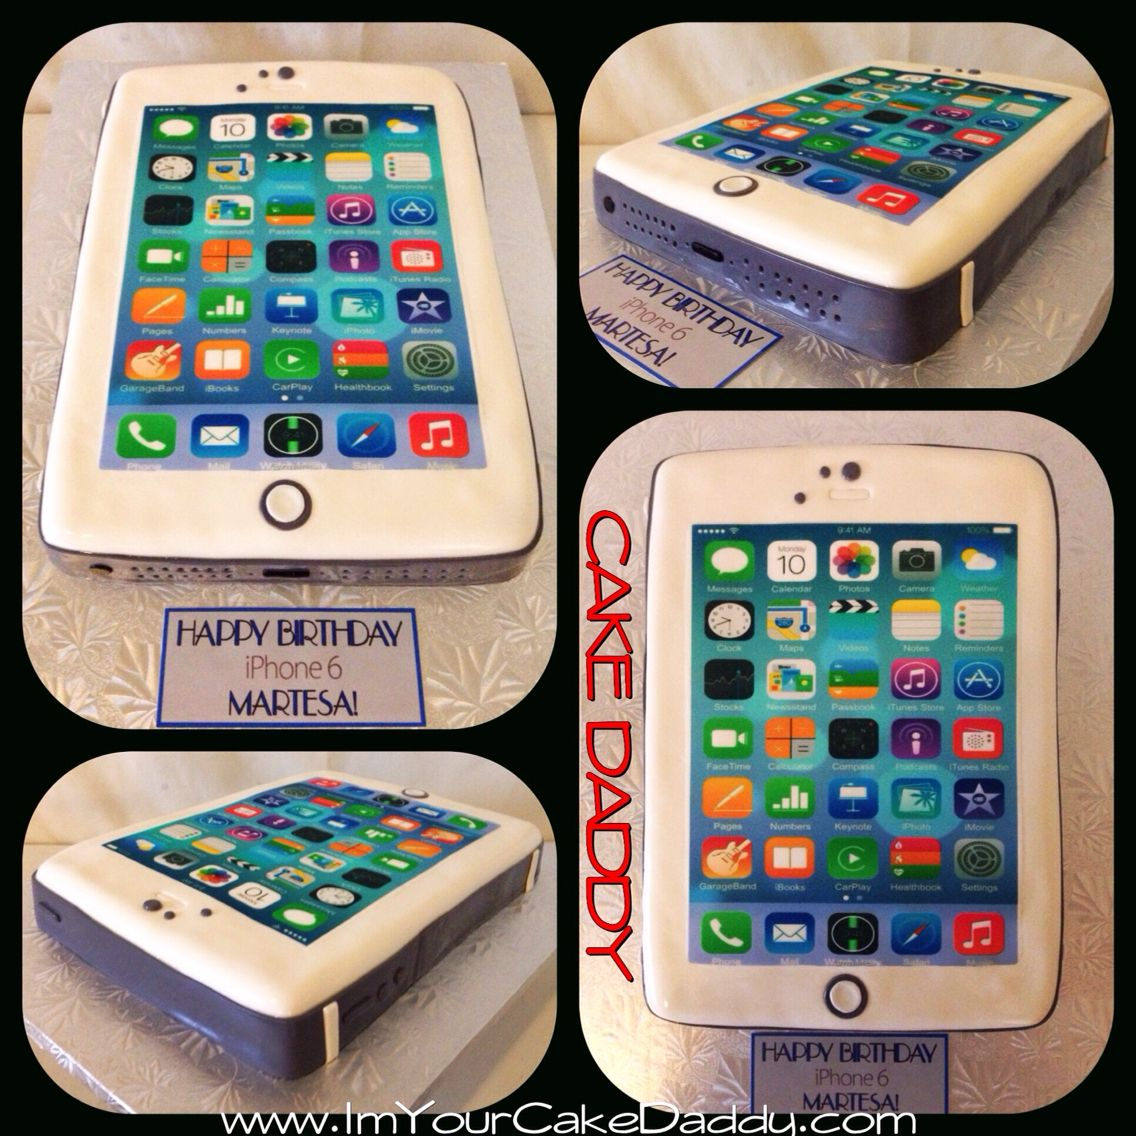 iPhone 6 birthday cake Custom Cakes by Cake Daddy Pinterest